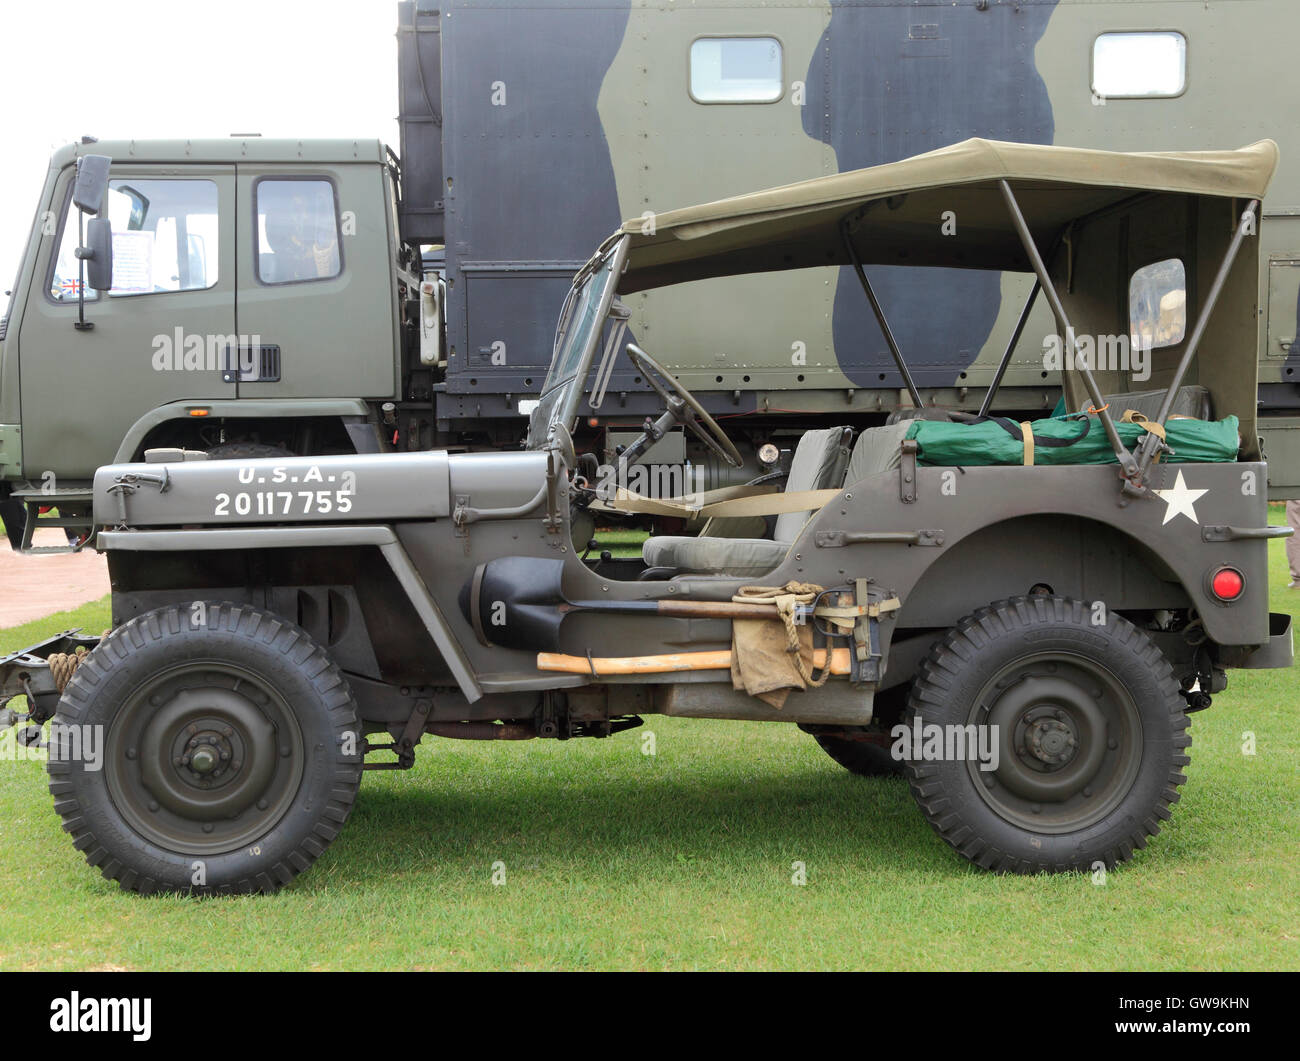 US Army Jeep, Ford GPW, general purpose vehicle, World War 2, built 1942, WW2, second world war, vehicles jeeps - Stock Image